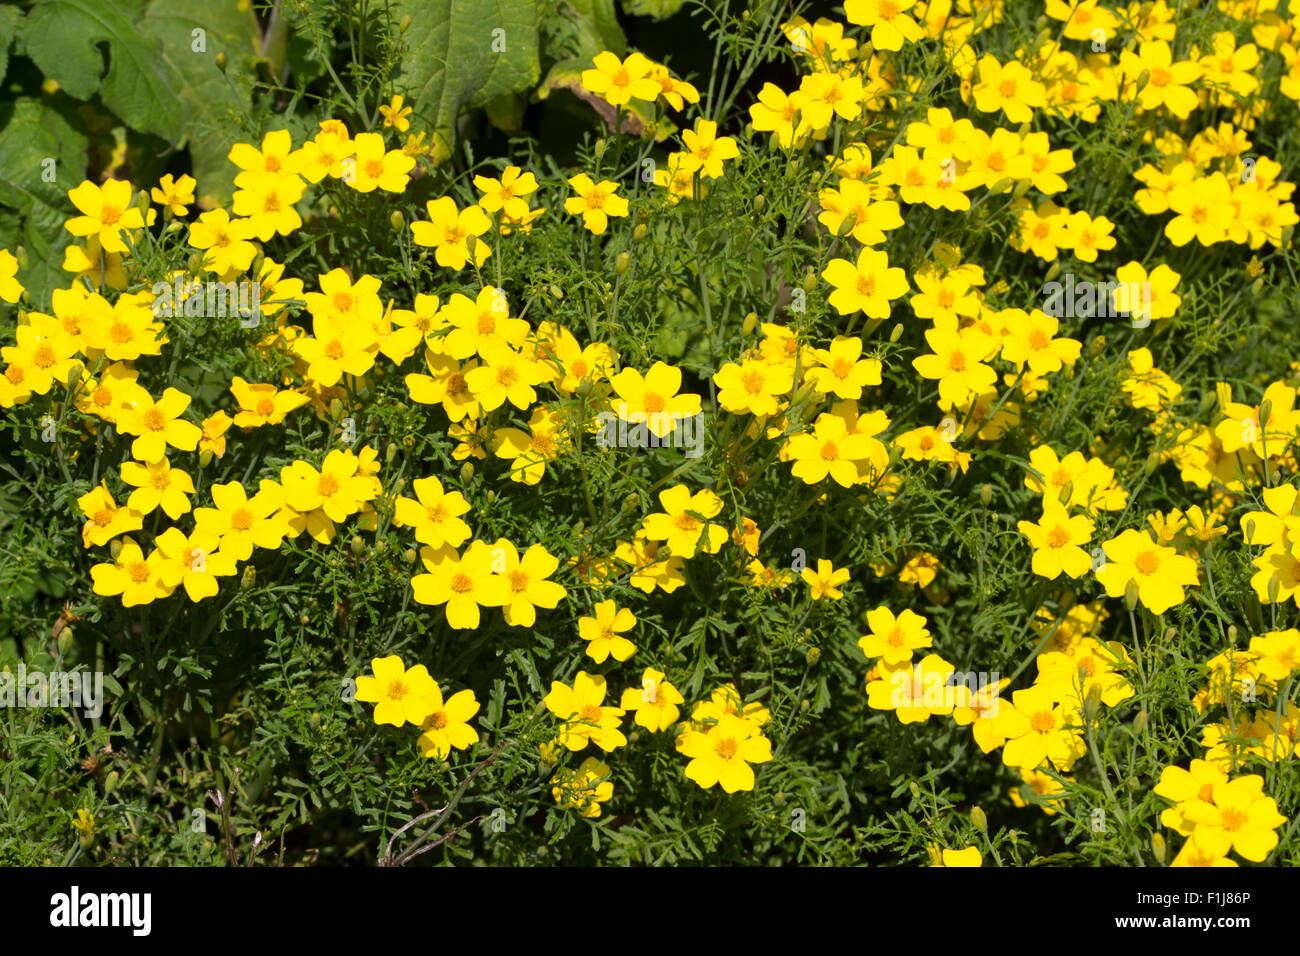 Golden centred yellow flowers of the half hardy perennial bidens golden centred yellow flowers of the half hardy perennial bidens aurea often used as summer bedding mightylinksfo